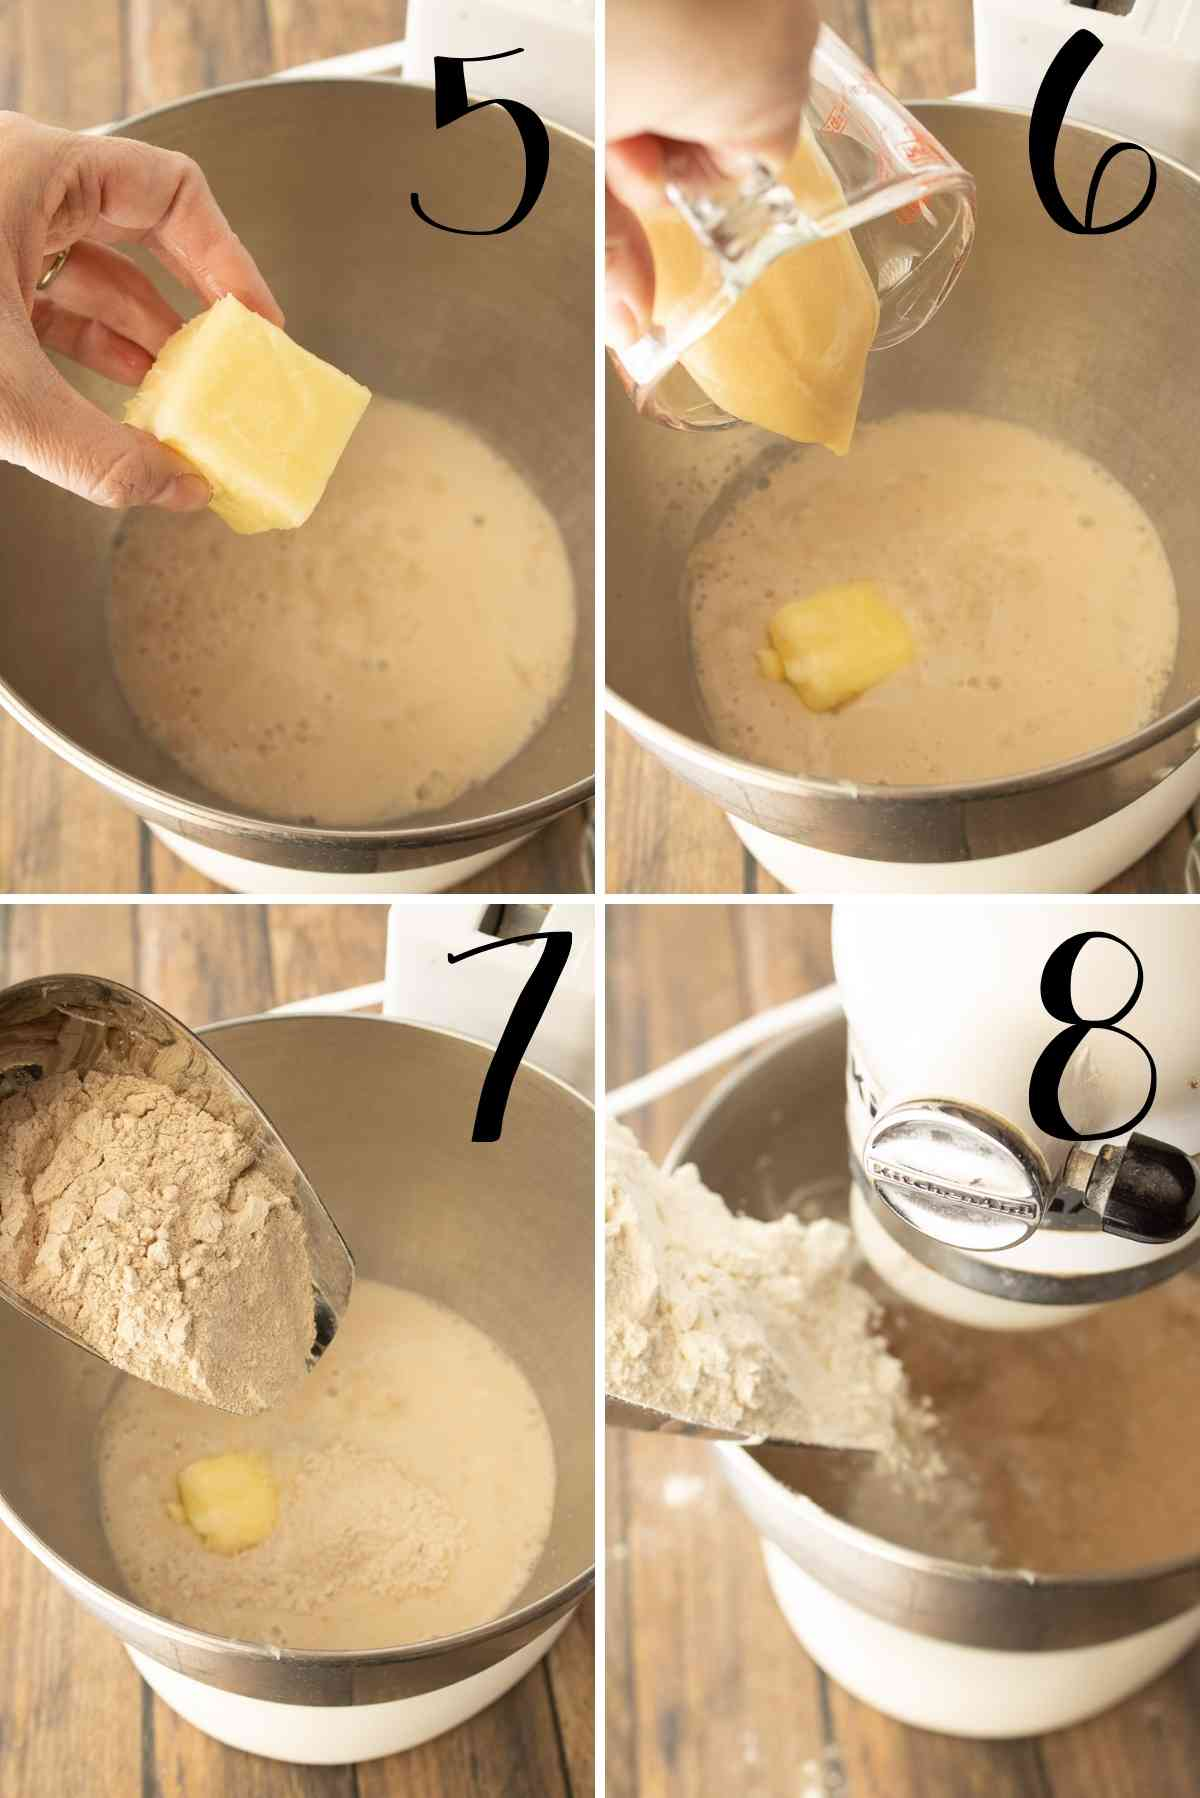 Butter, honey and flour added to the mixing bowl.